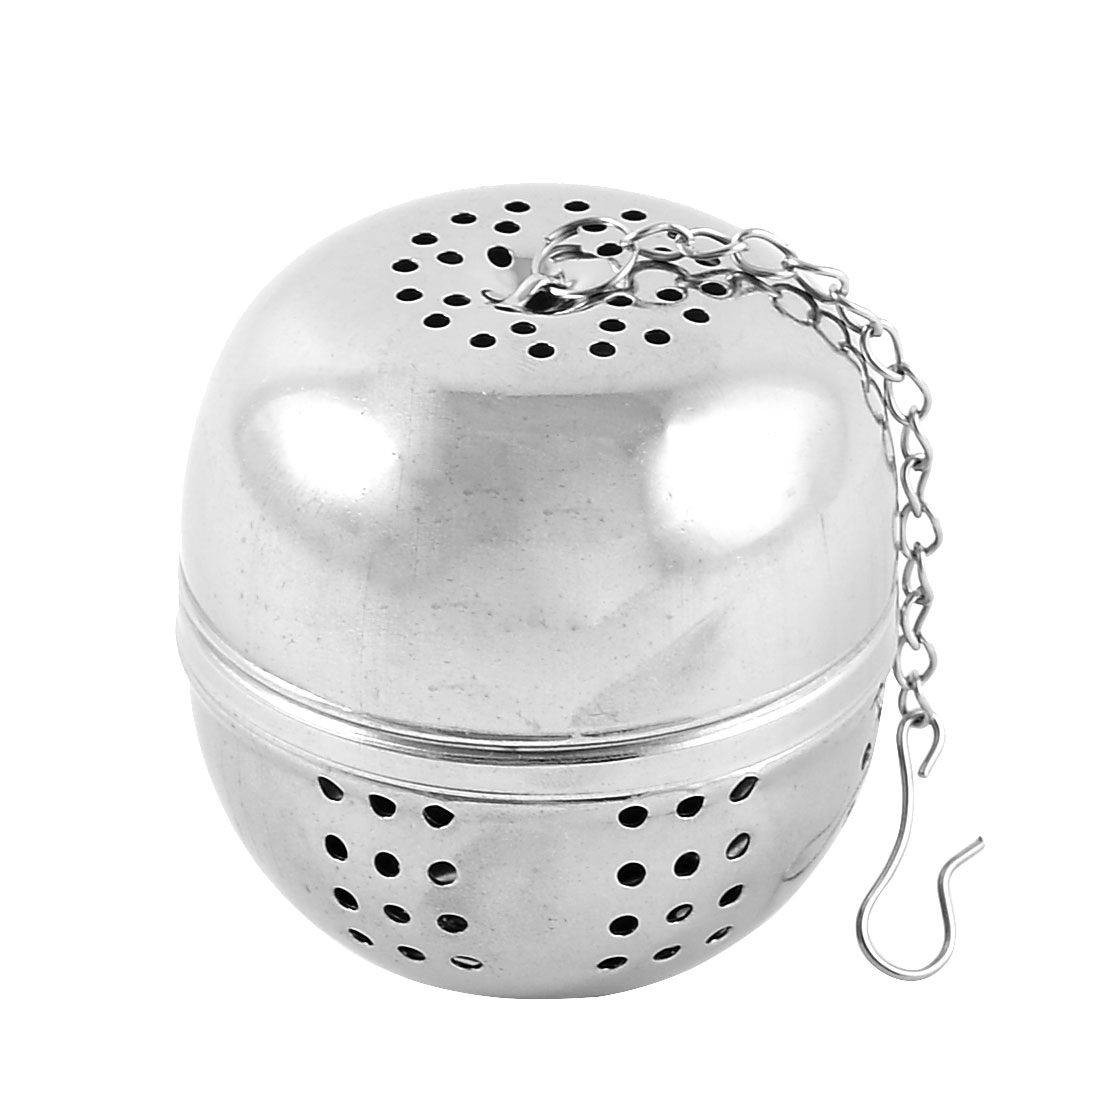 Dragon 2inch Tea Ball Mesh Infuser Stainless Steel Sphere Strainer G33 Tea Party